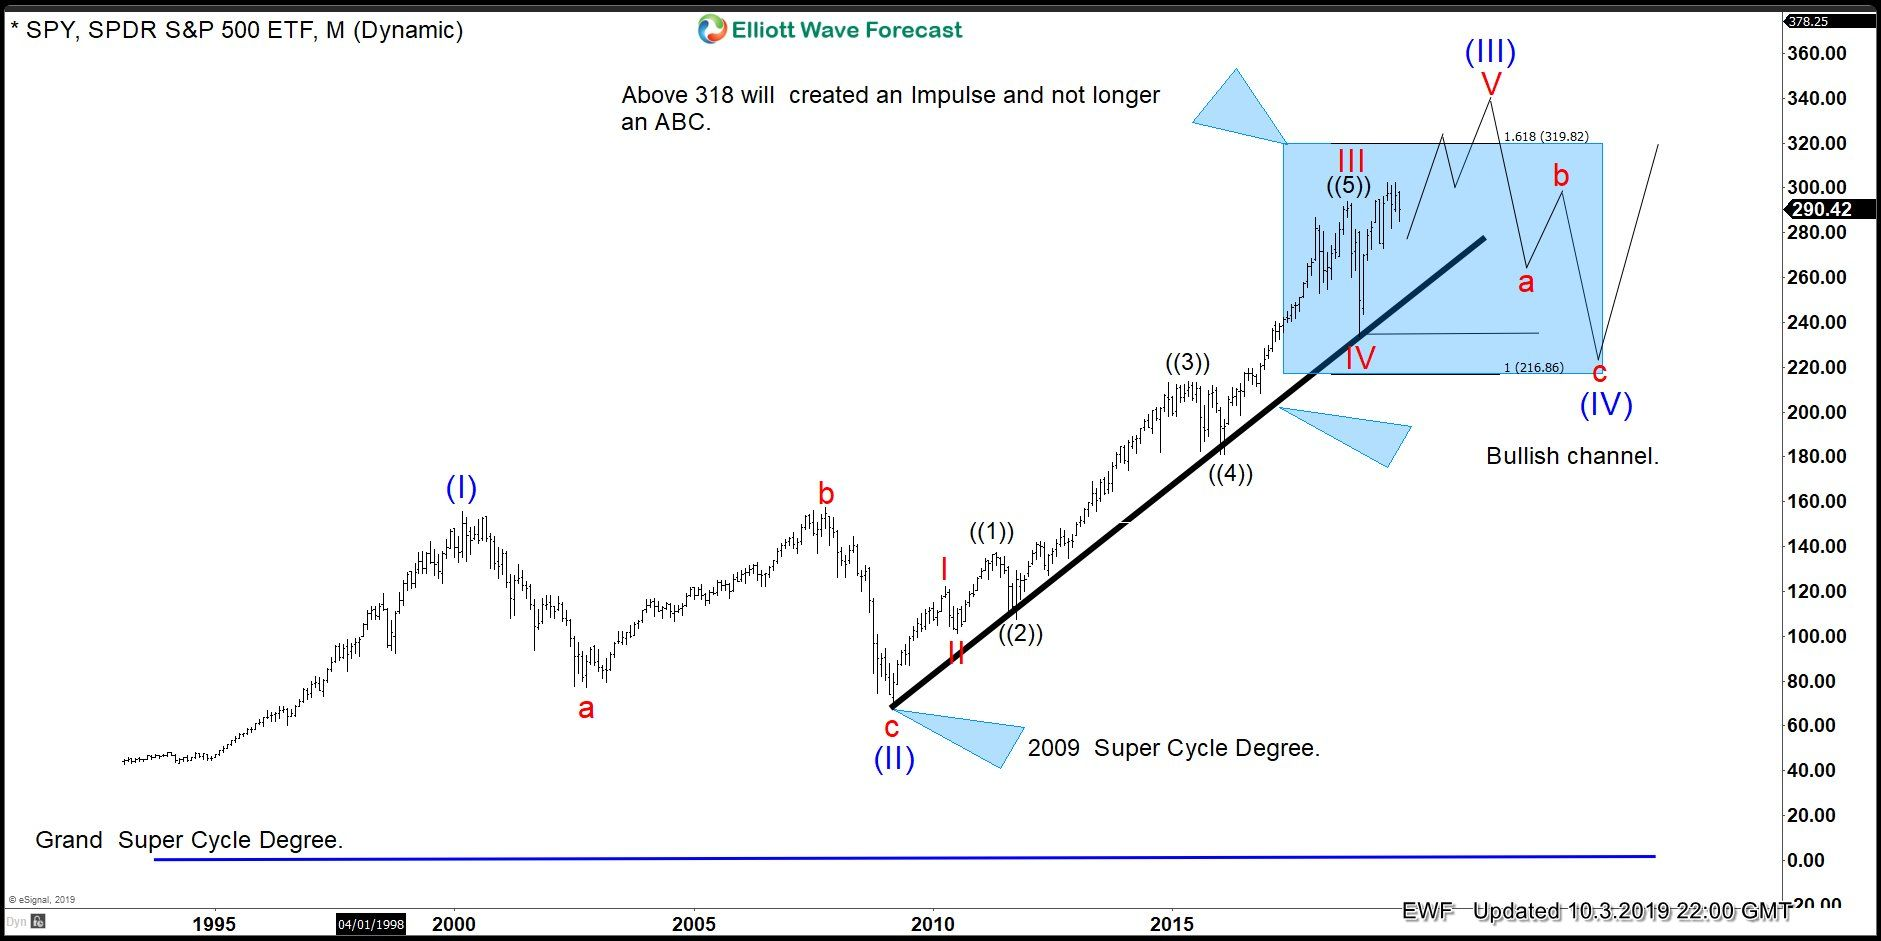 Spy Elliott Wave Impulse Simple Rule Imply Bulls Are Still In